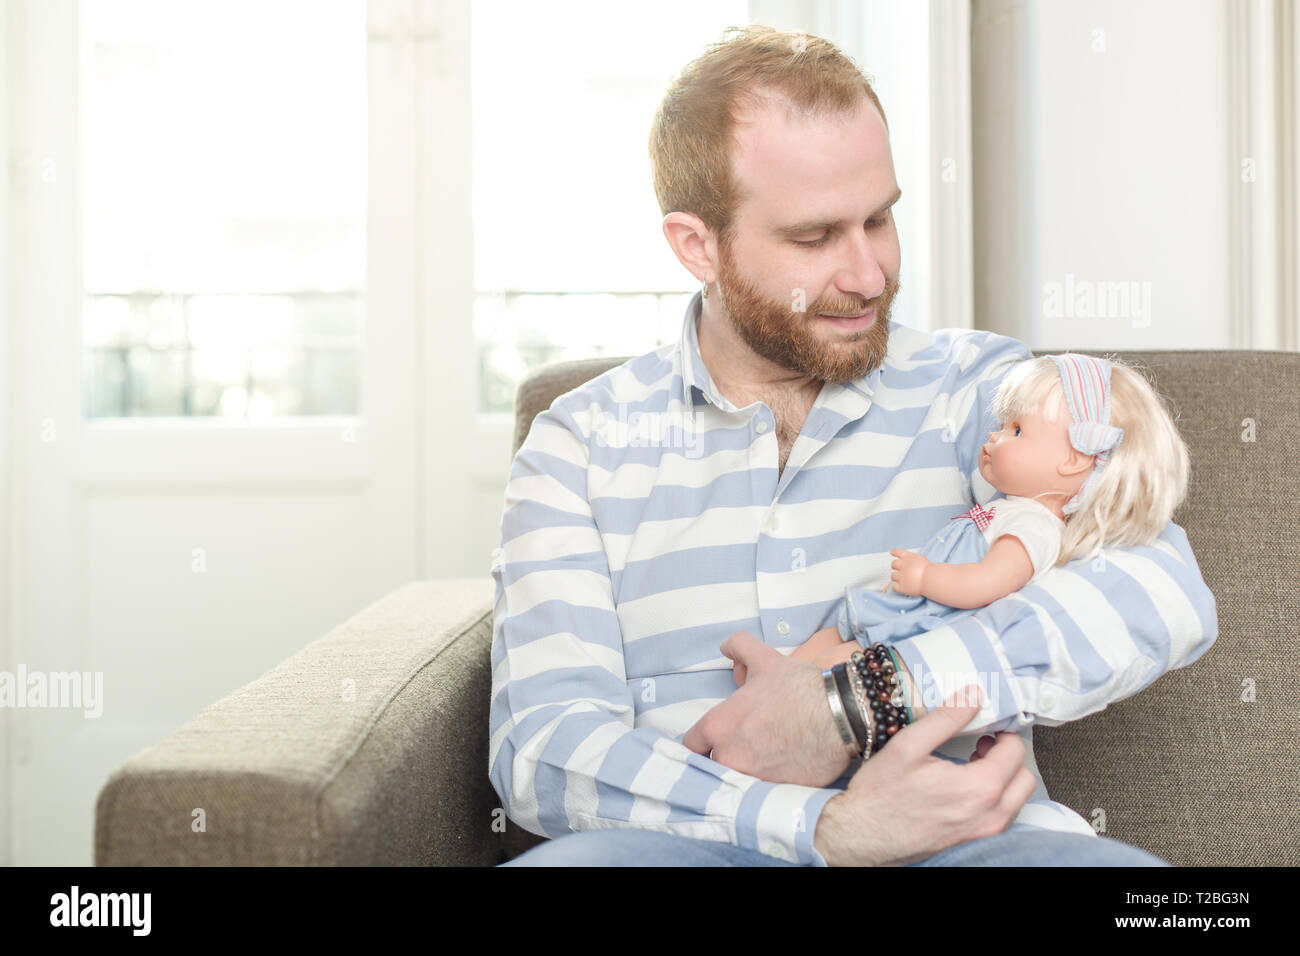 Smiling Man Sitting on a Couch Cradling a Doll - Stock Image